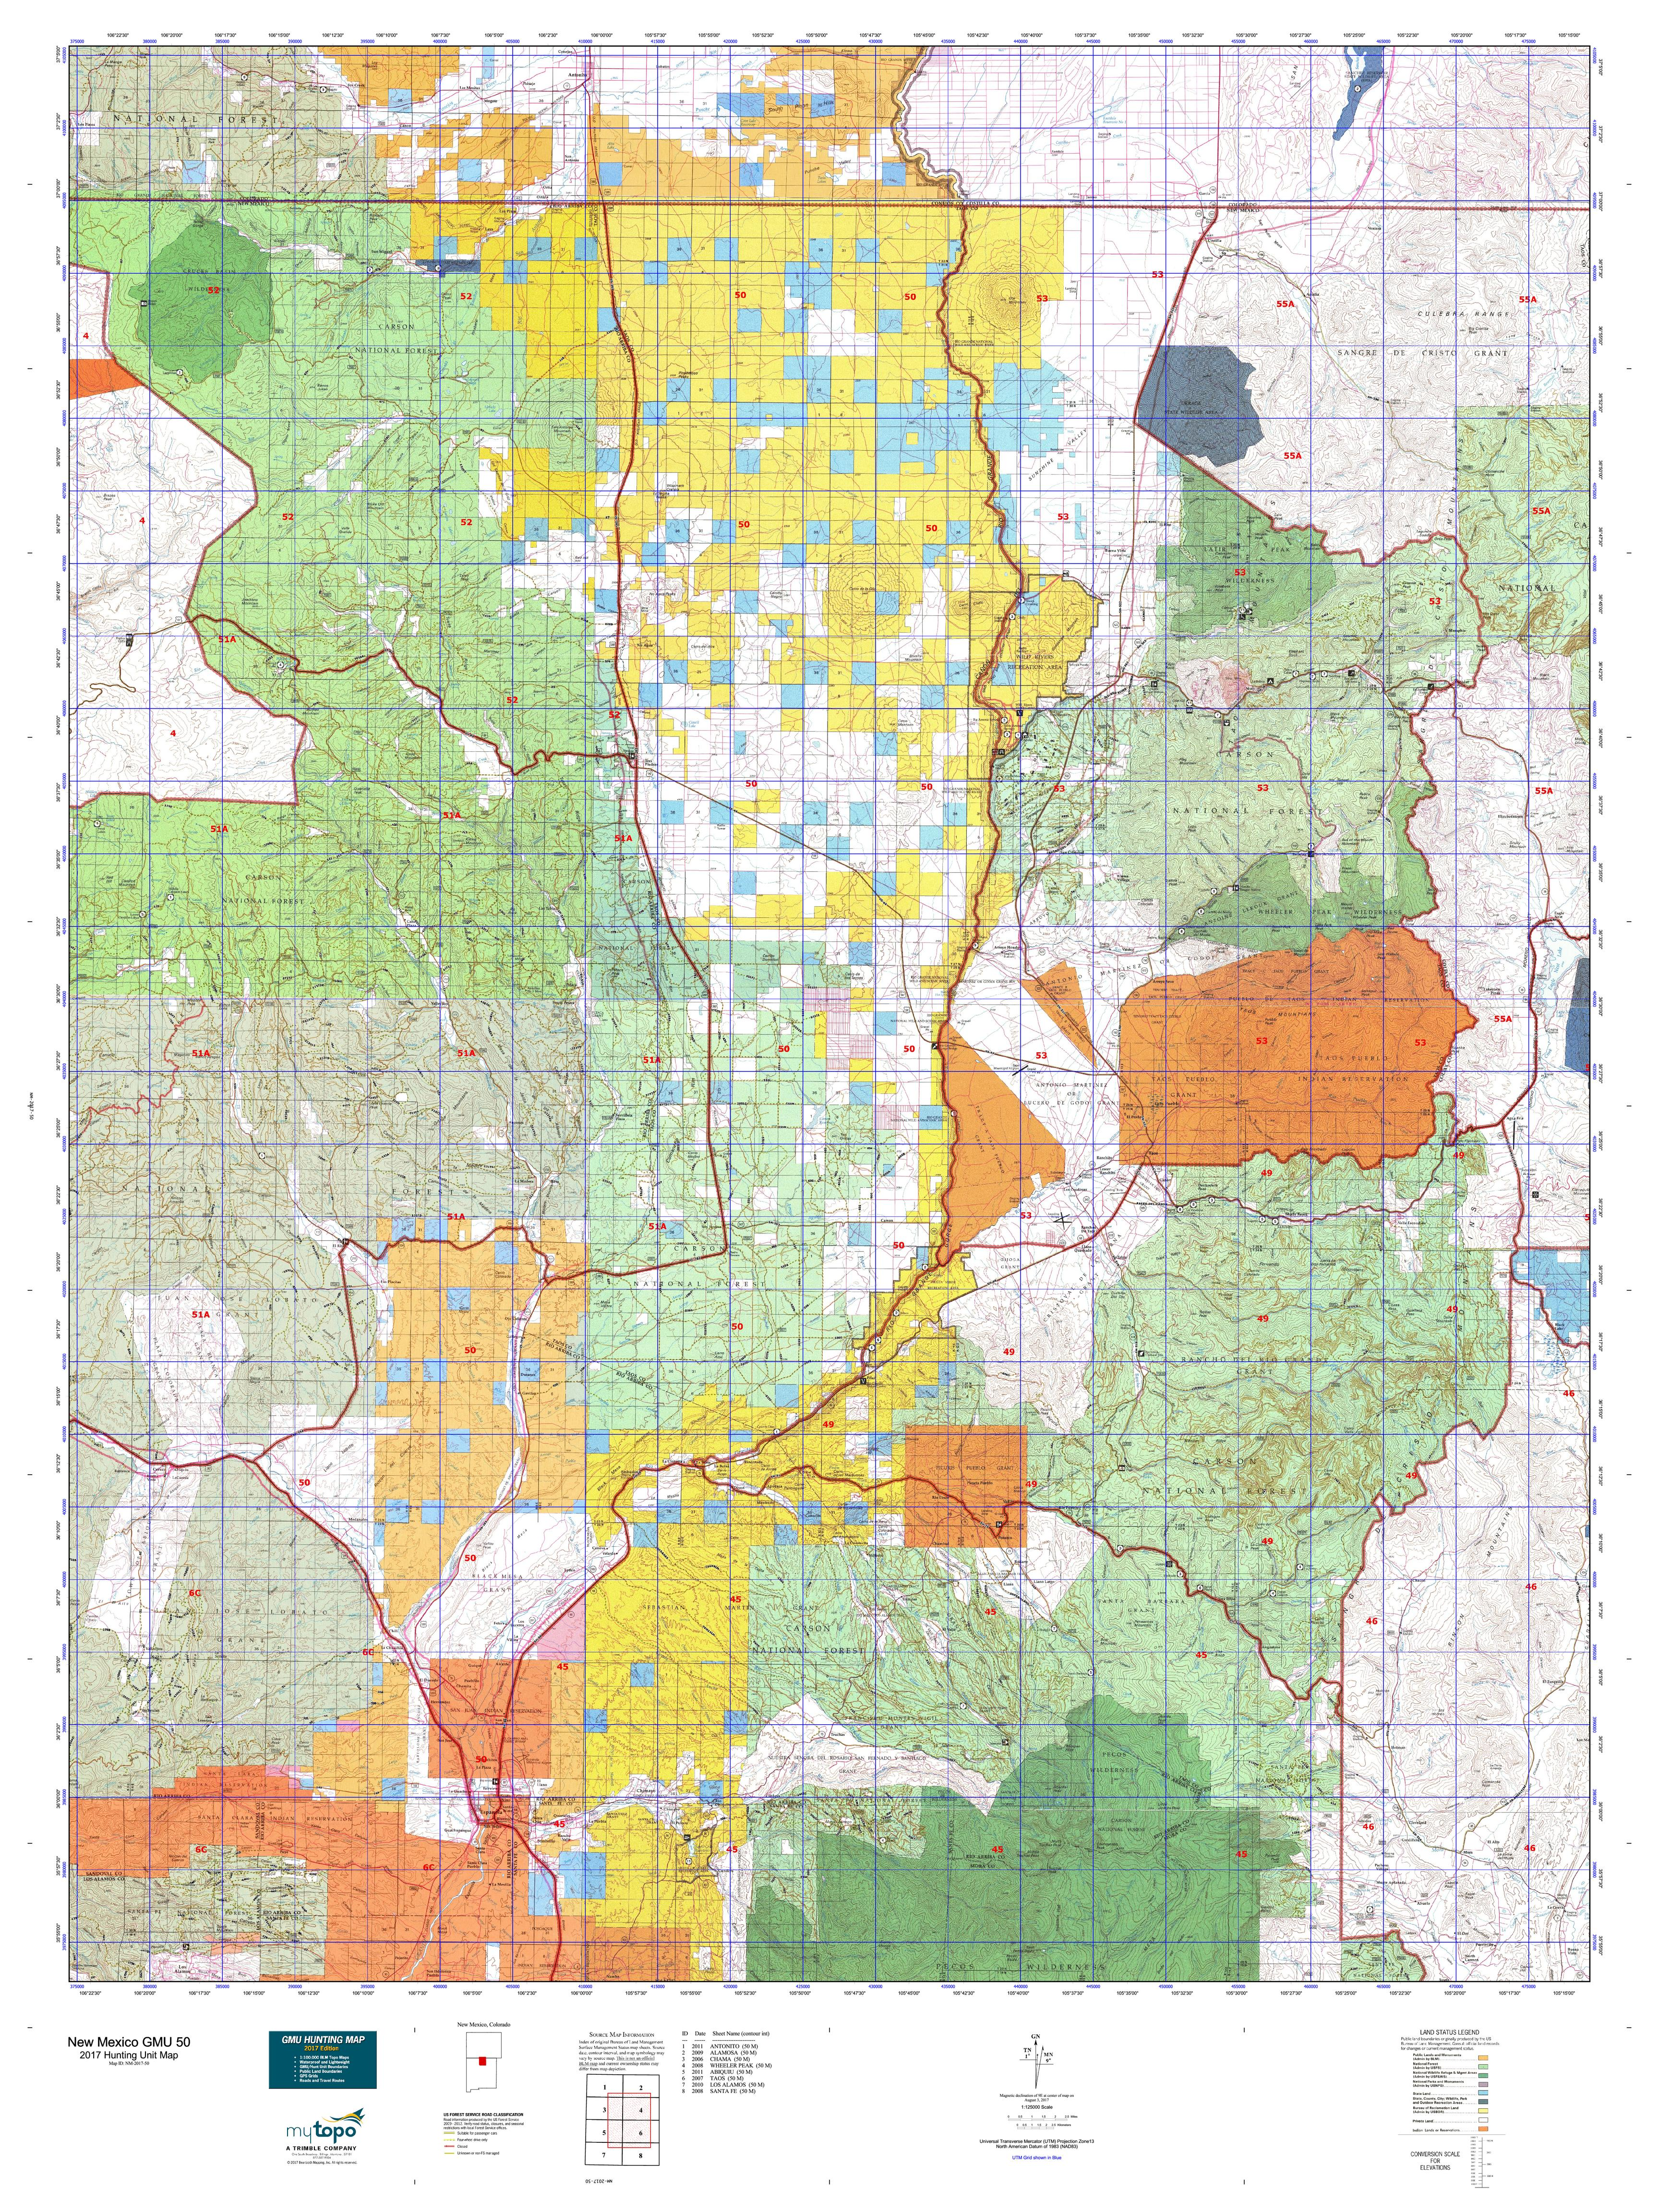 17 Blm Land Ownership Maps New Mexico Blm Land Ownership Maps New